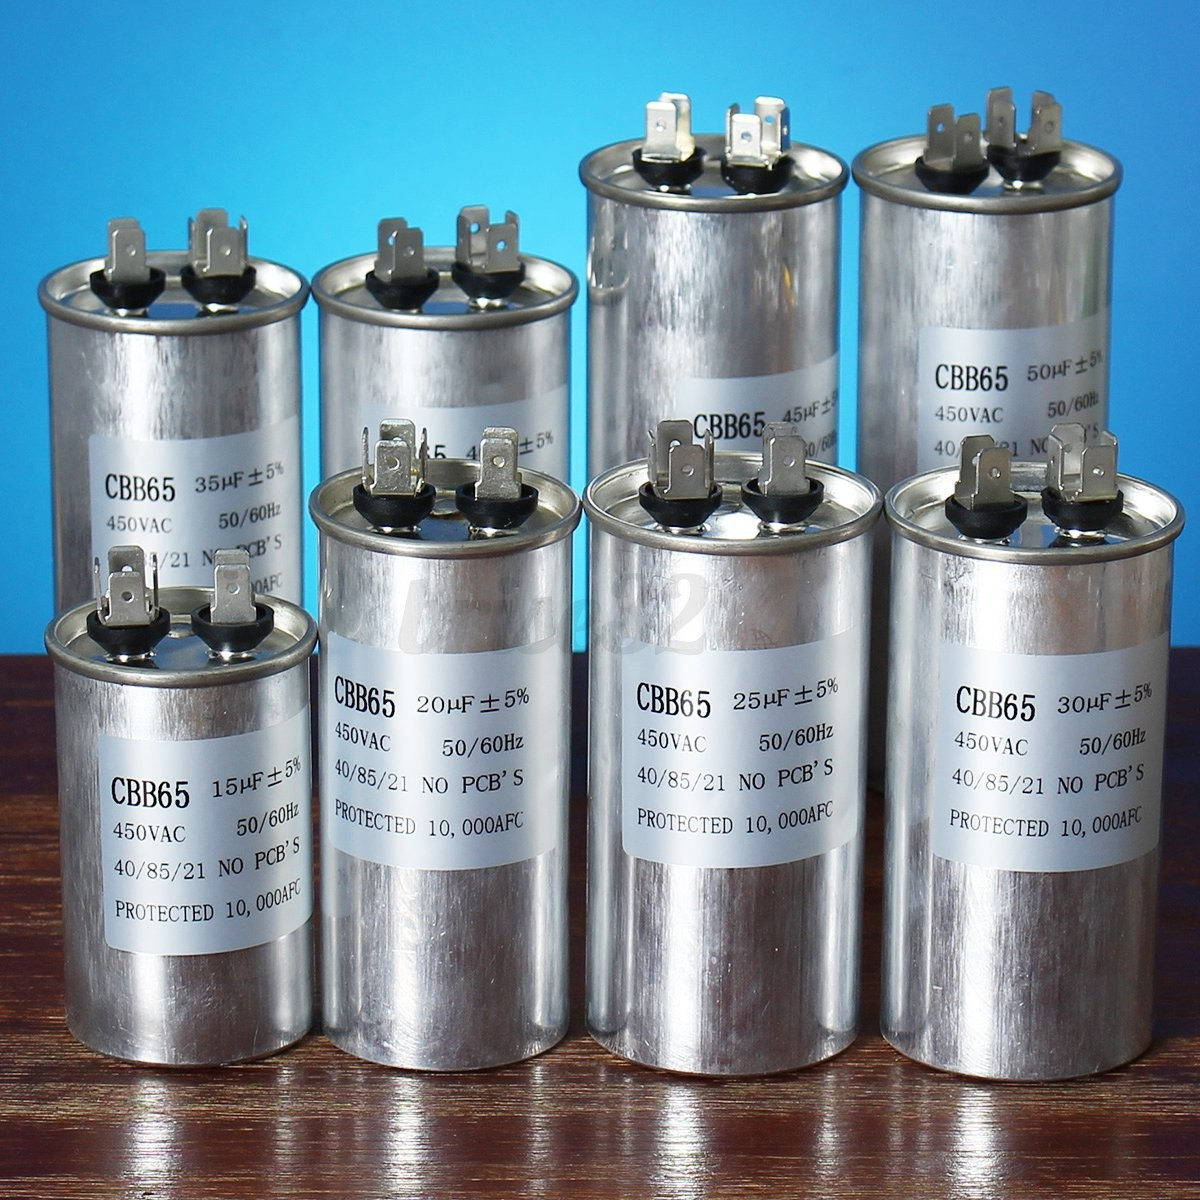 15 30uf cbb65 450vac motor capacitor air conditioner for Air conditioner compressor motor